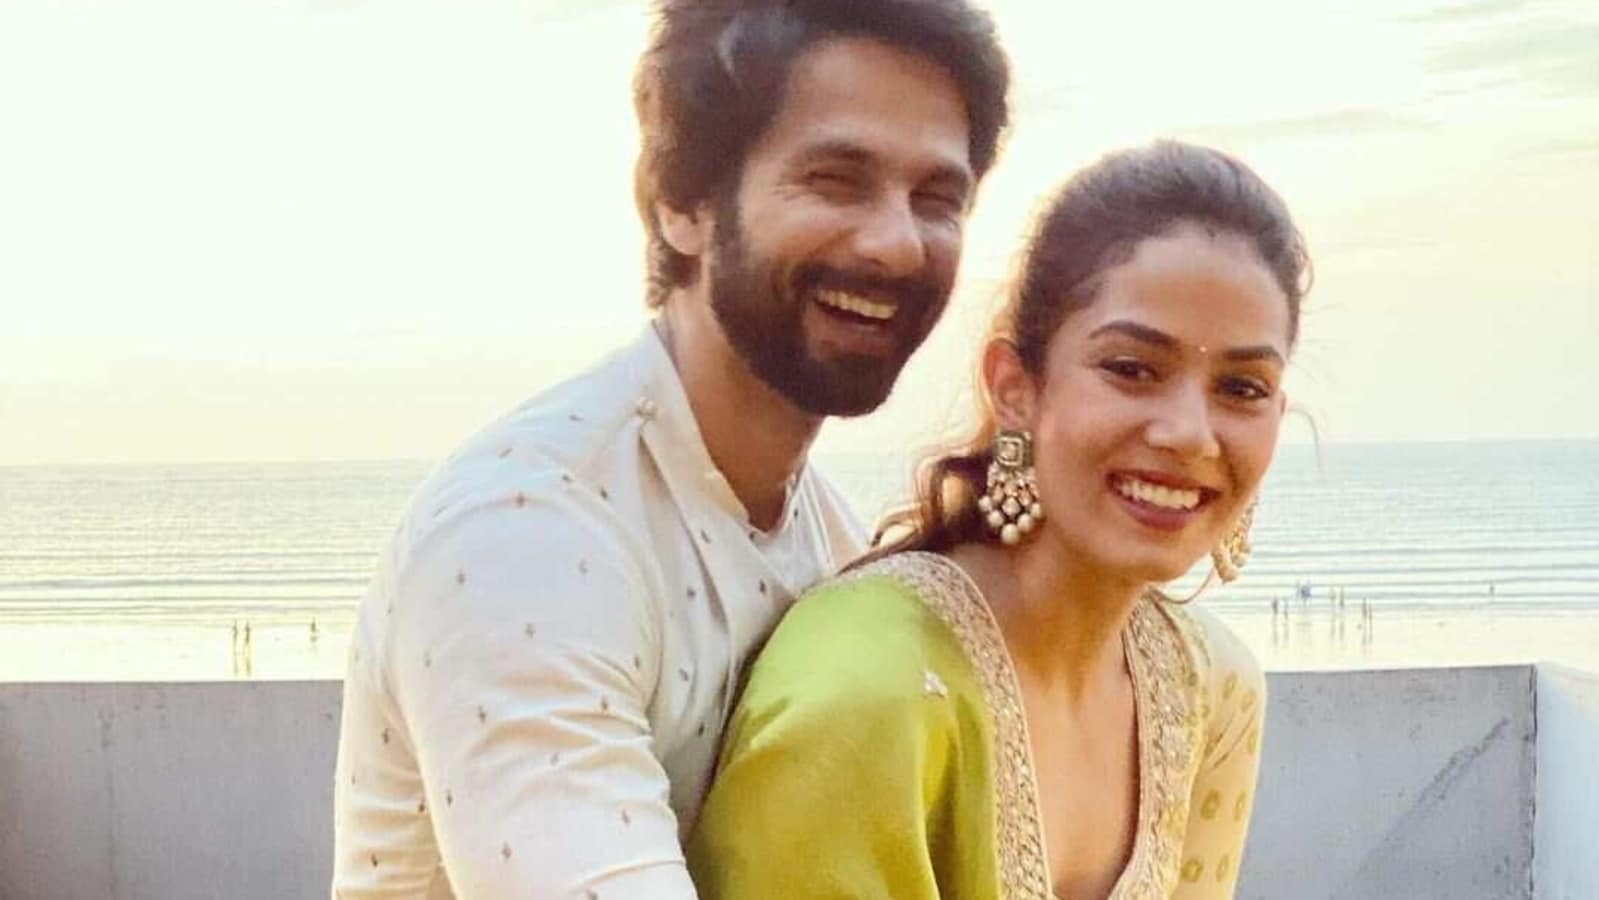 Shahid Kapoor forgets to respond to Mira Rajput's dinner invitation, she calls him out on Instagram: 'RSVP in the pipeline'